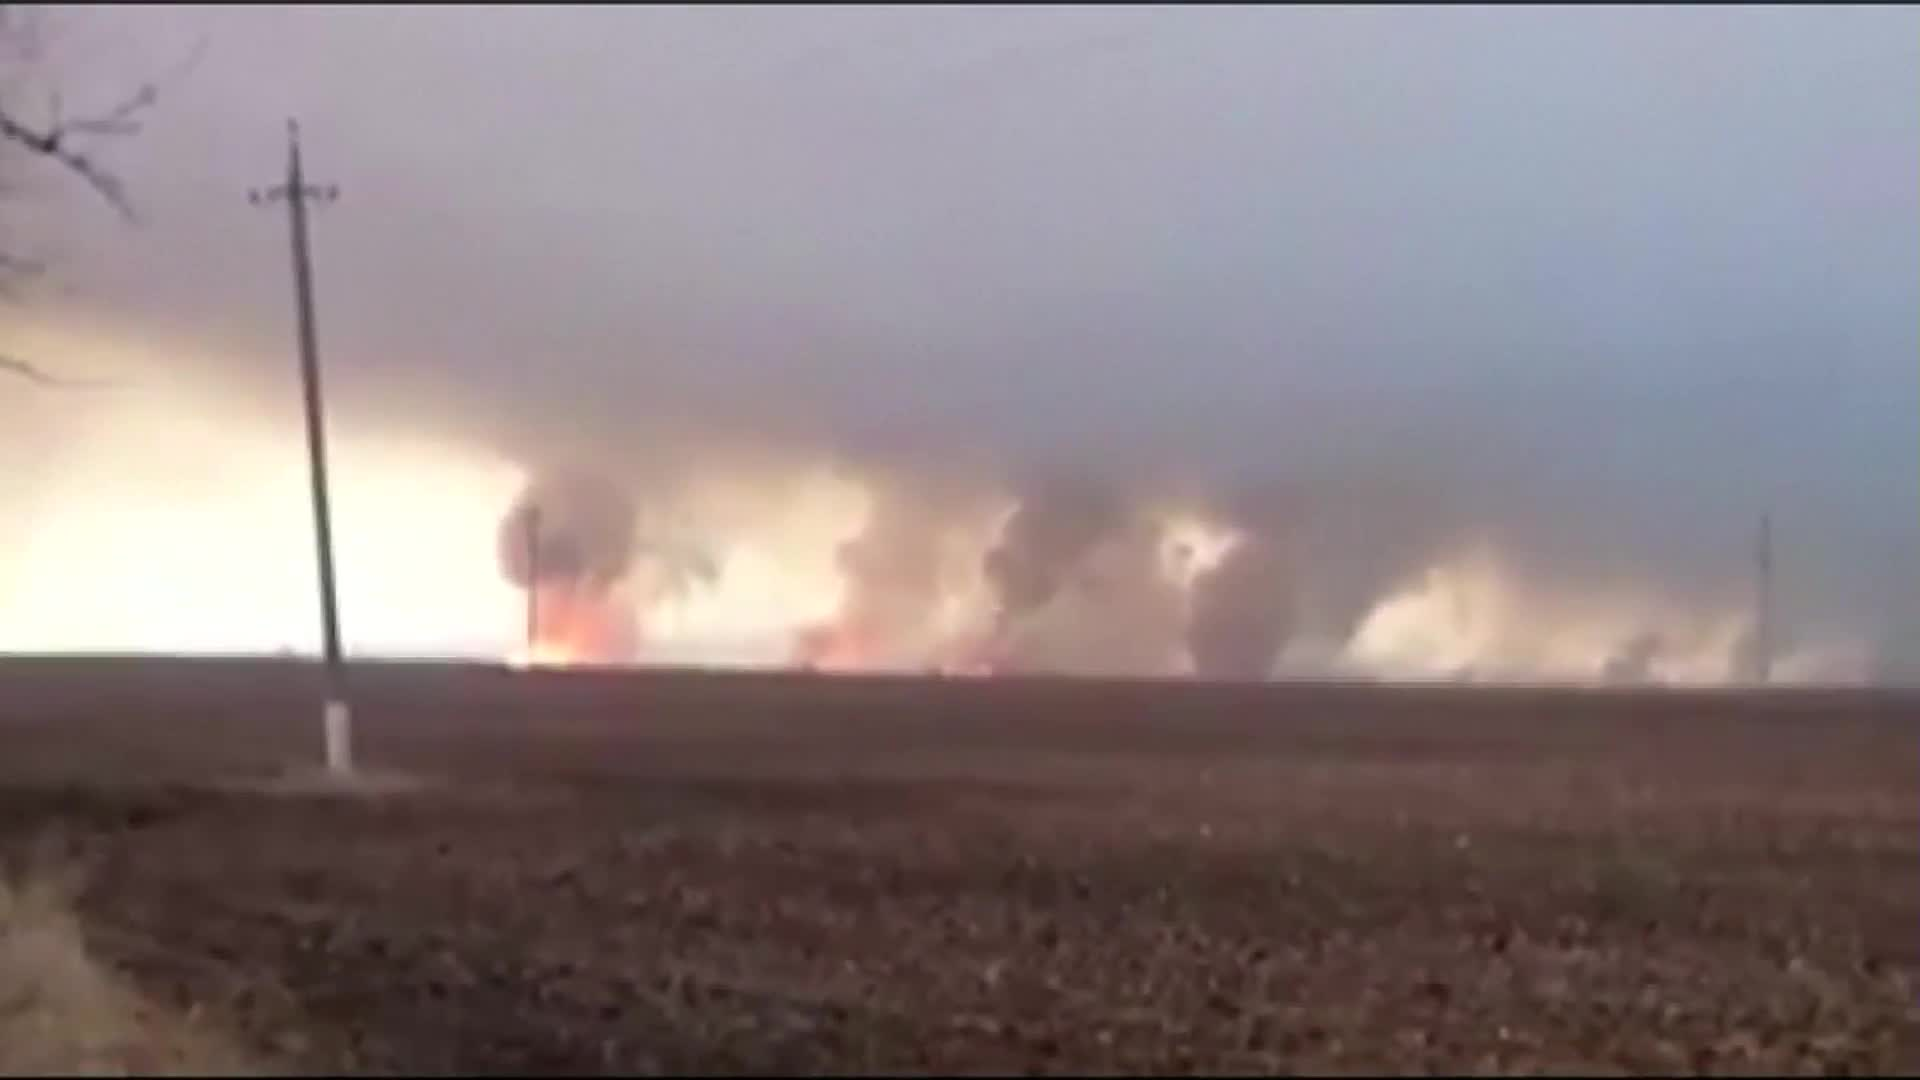 Fire rages at arms warehouse in eastern Ukraine